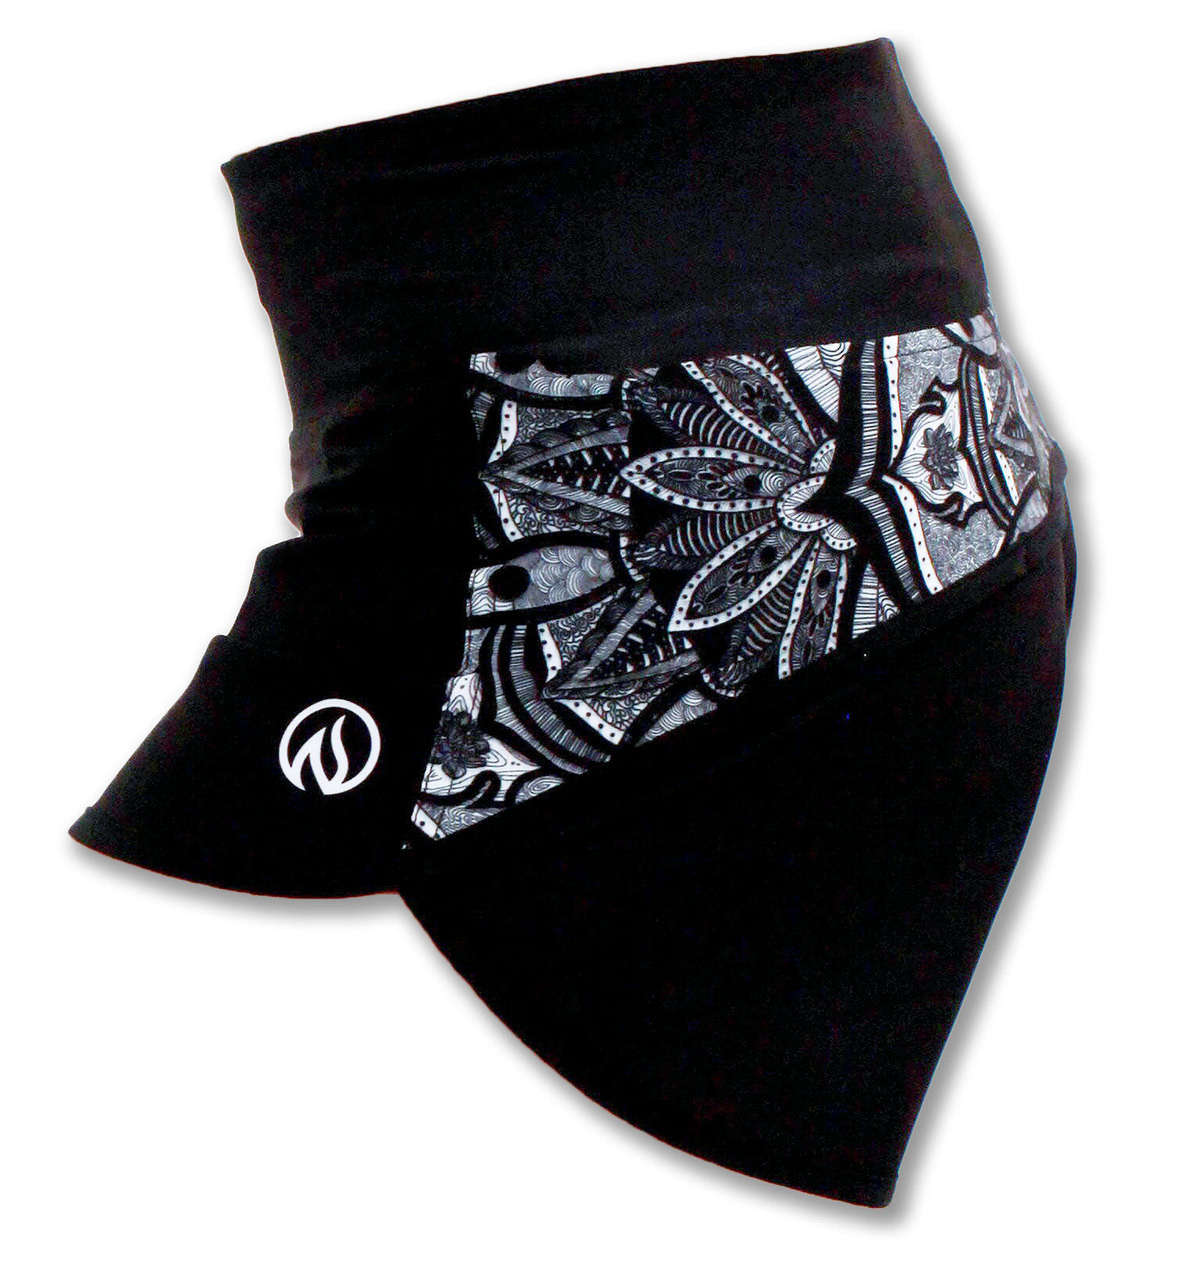 INKnBURN Healing Mandala Shorts Side Waistband Up